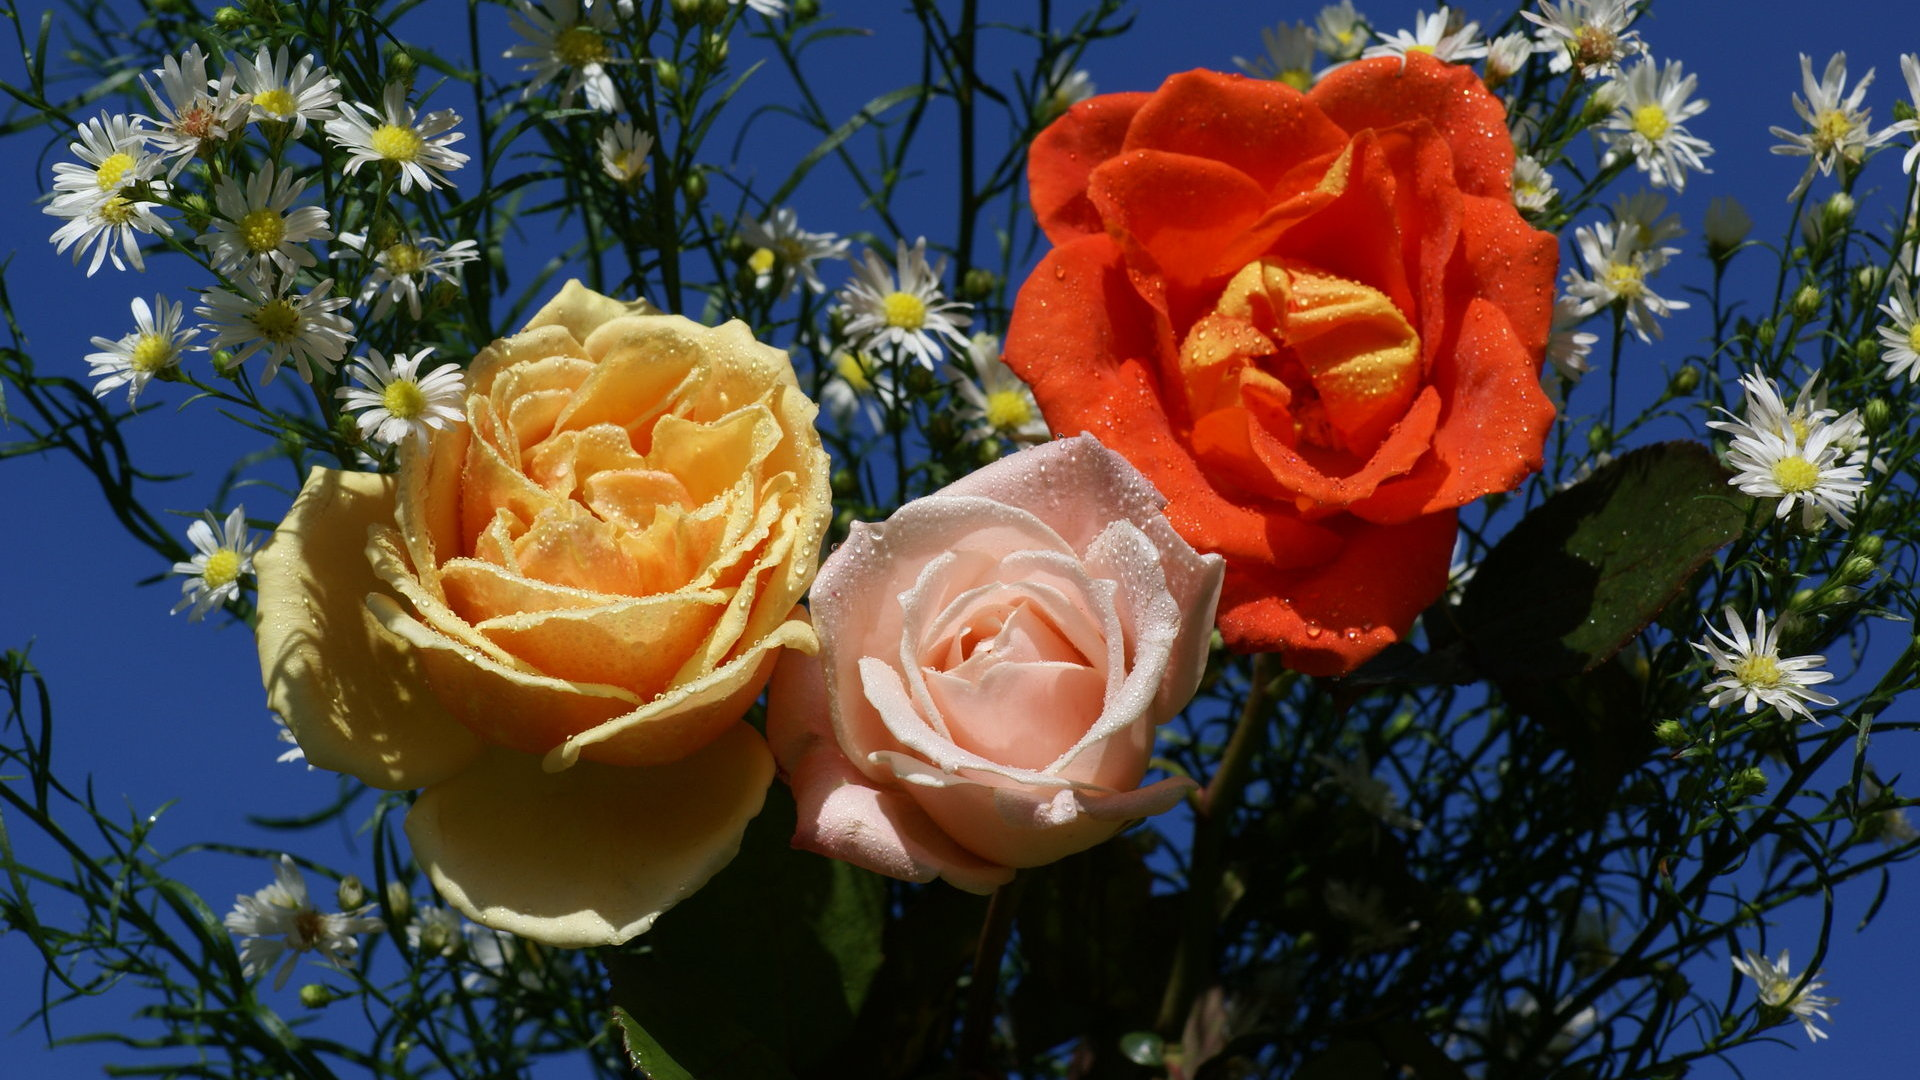 http://www.allabouthappylife.com/wallpaper/widescreen/roses/colorful_roses-dsc01617.jpg